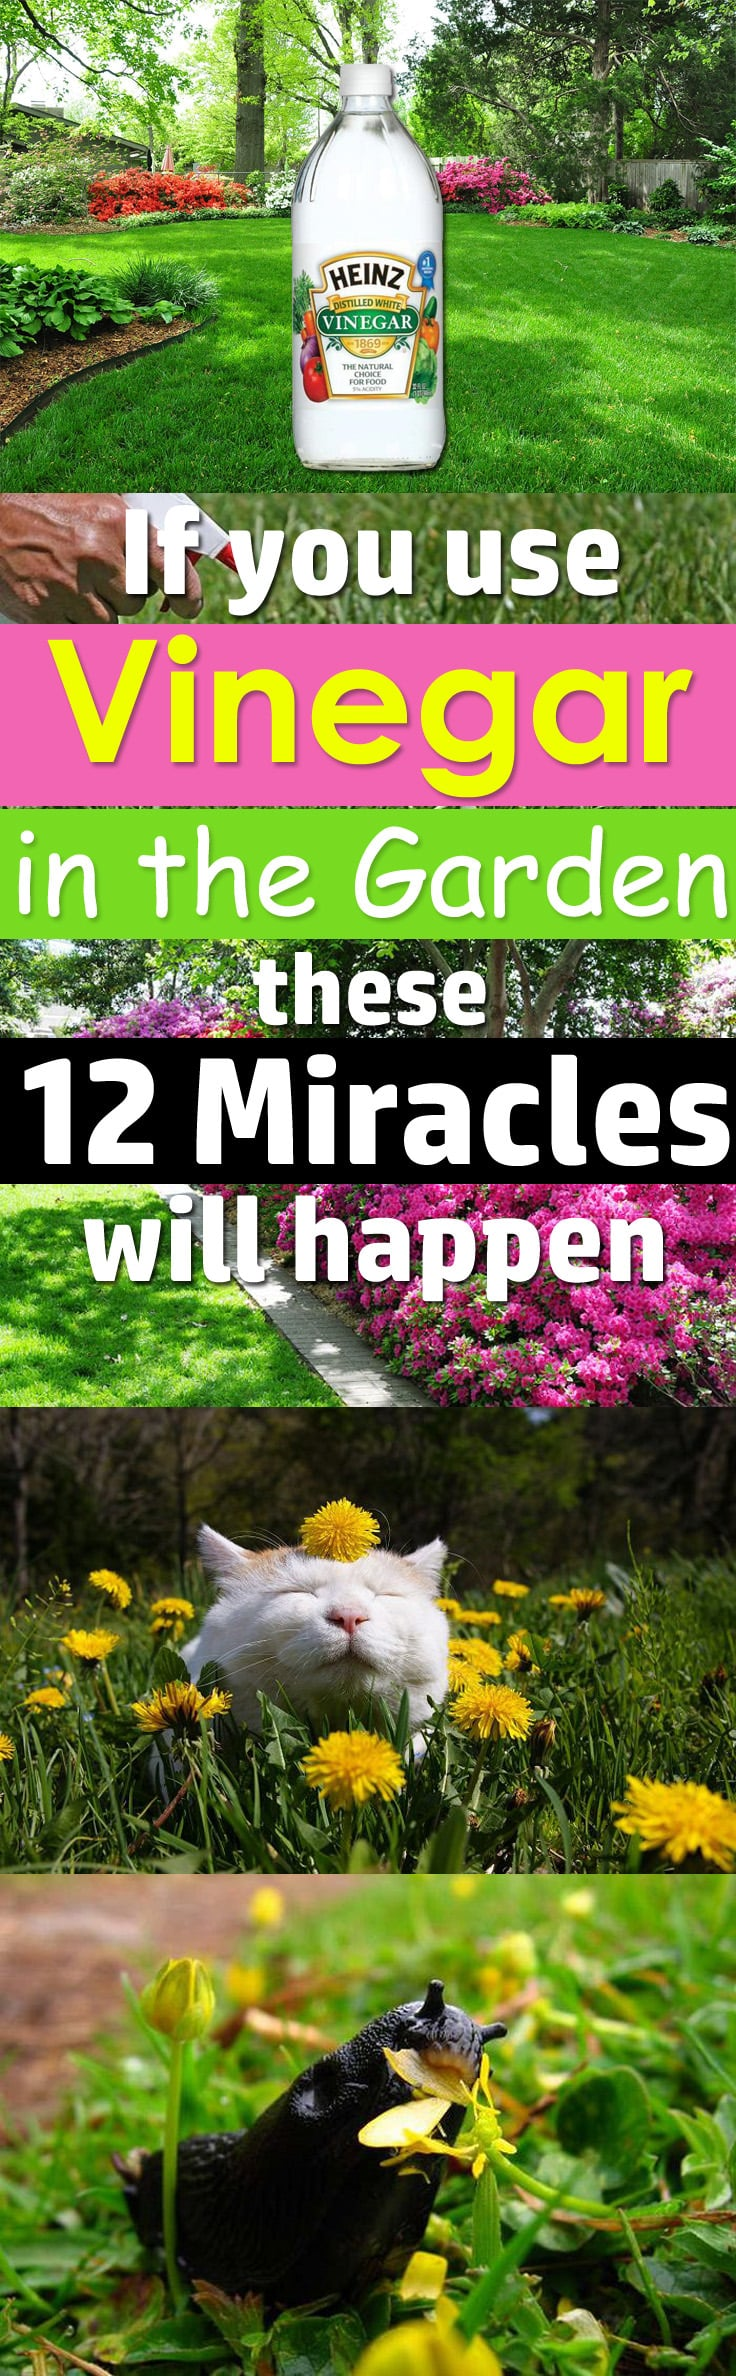 Vinegar Has Myriads Of Uses In The Kitchen But It Can Also Do Miracles In  The